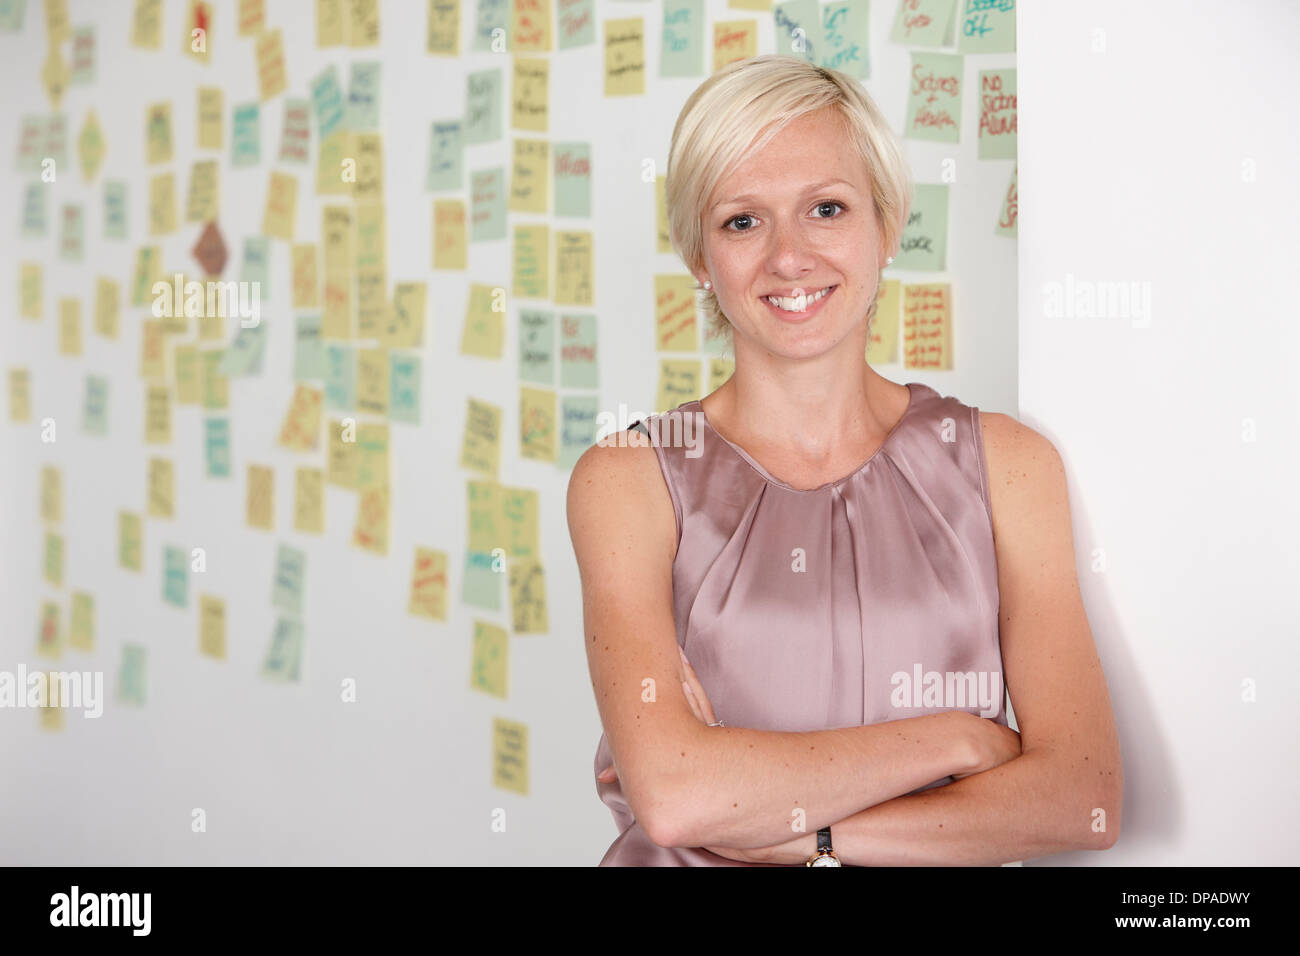 Portrait of mid adult woman with adhesive notes in background - Stock Image